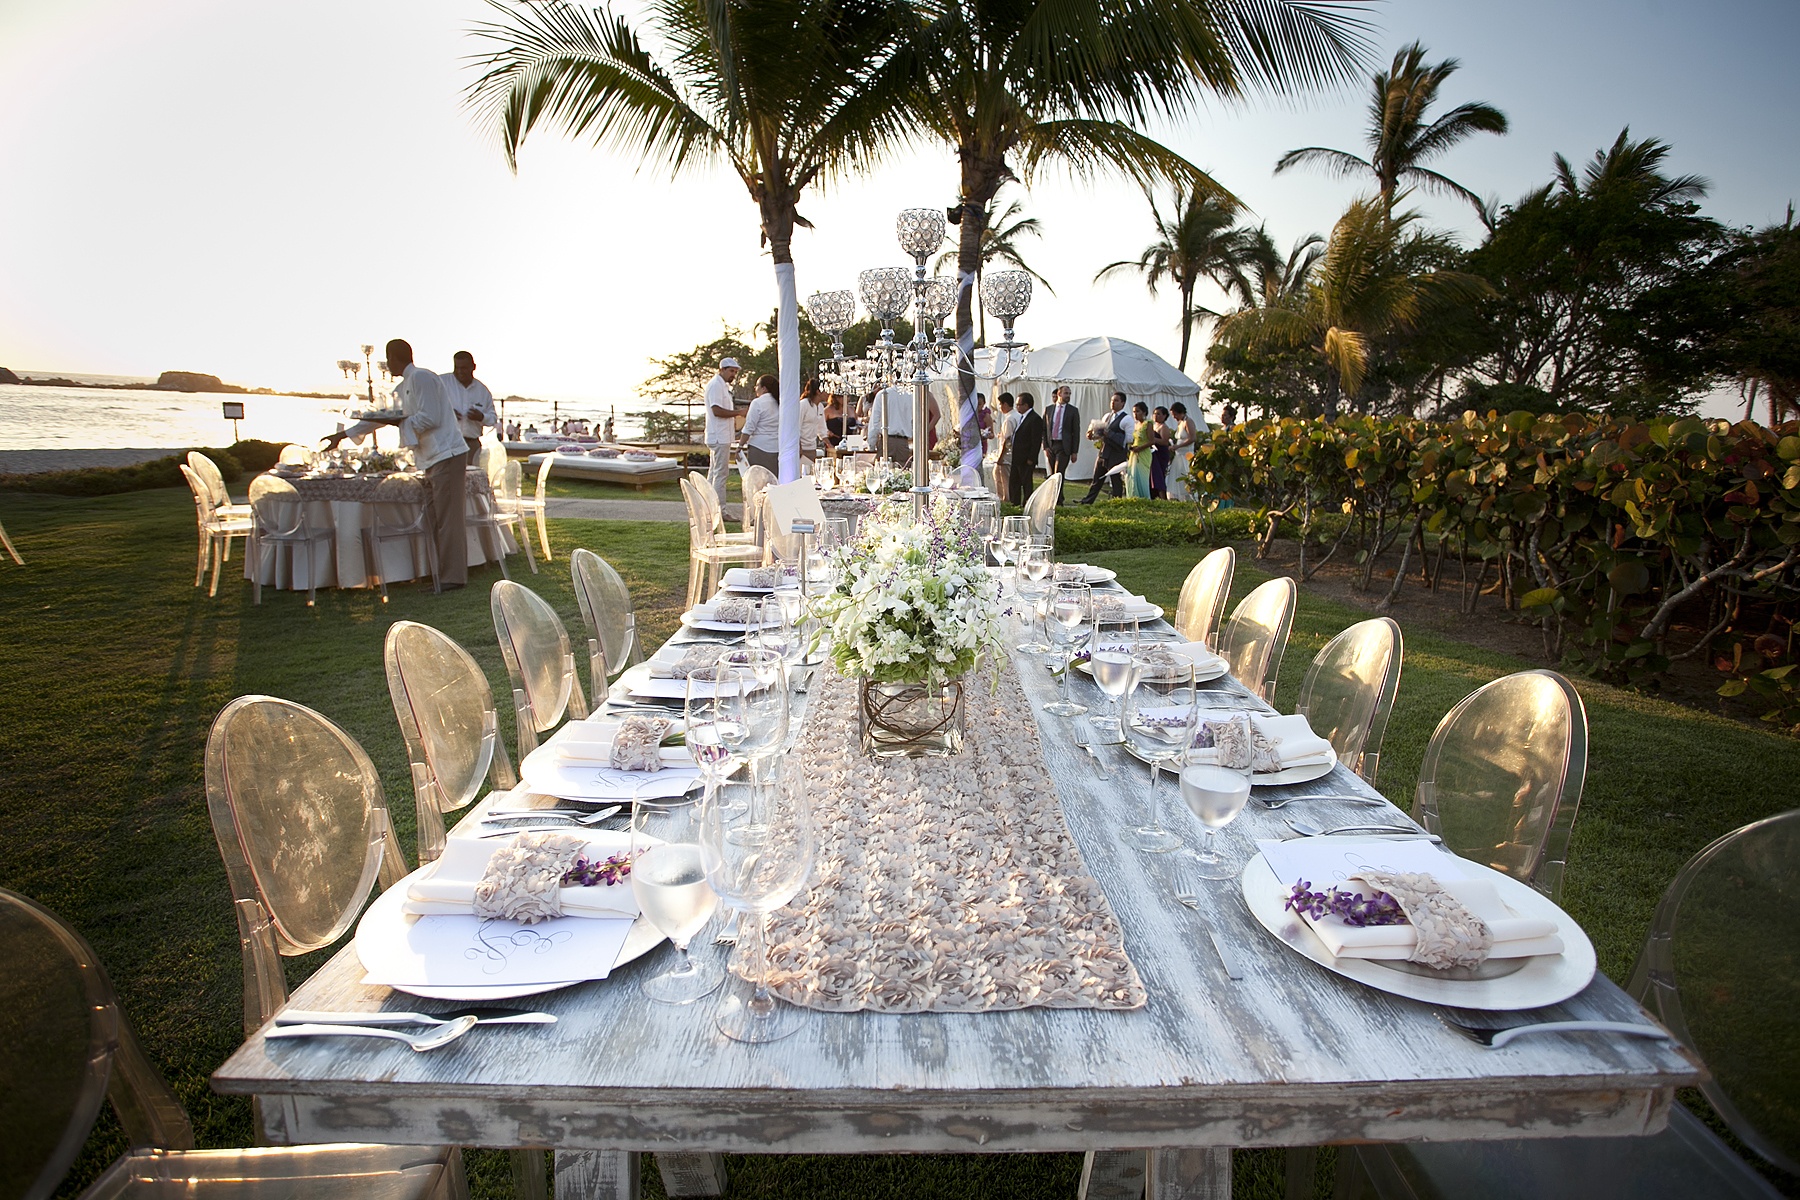 portland bride and groom style me pretty jet fete destination wedding blog and others if youre planning a st regis punta mita - Wedding Villas Punta Mita